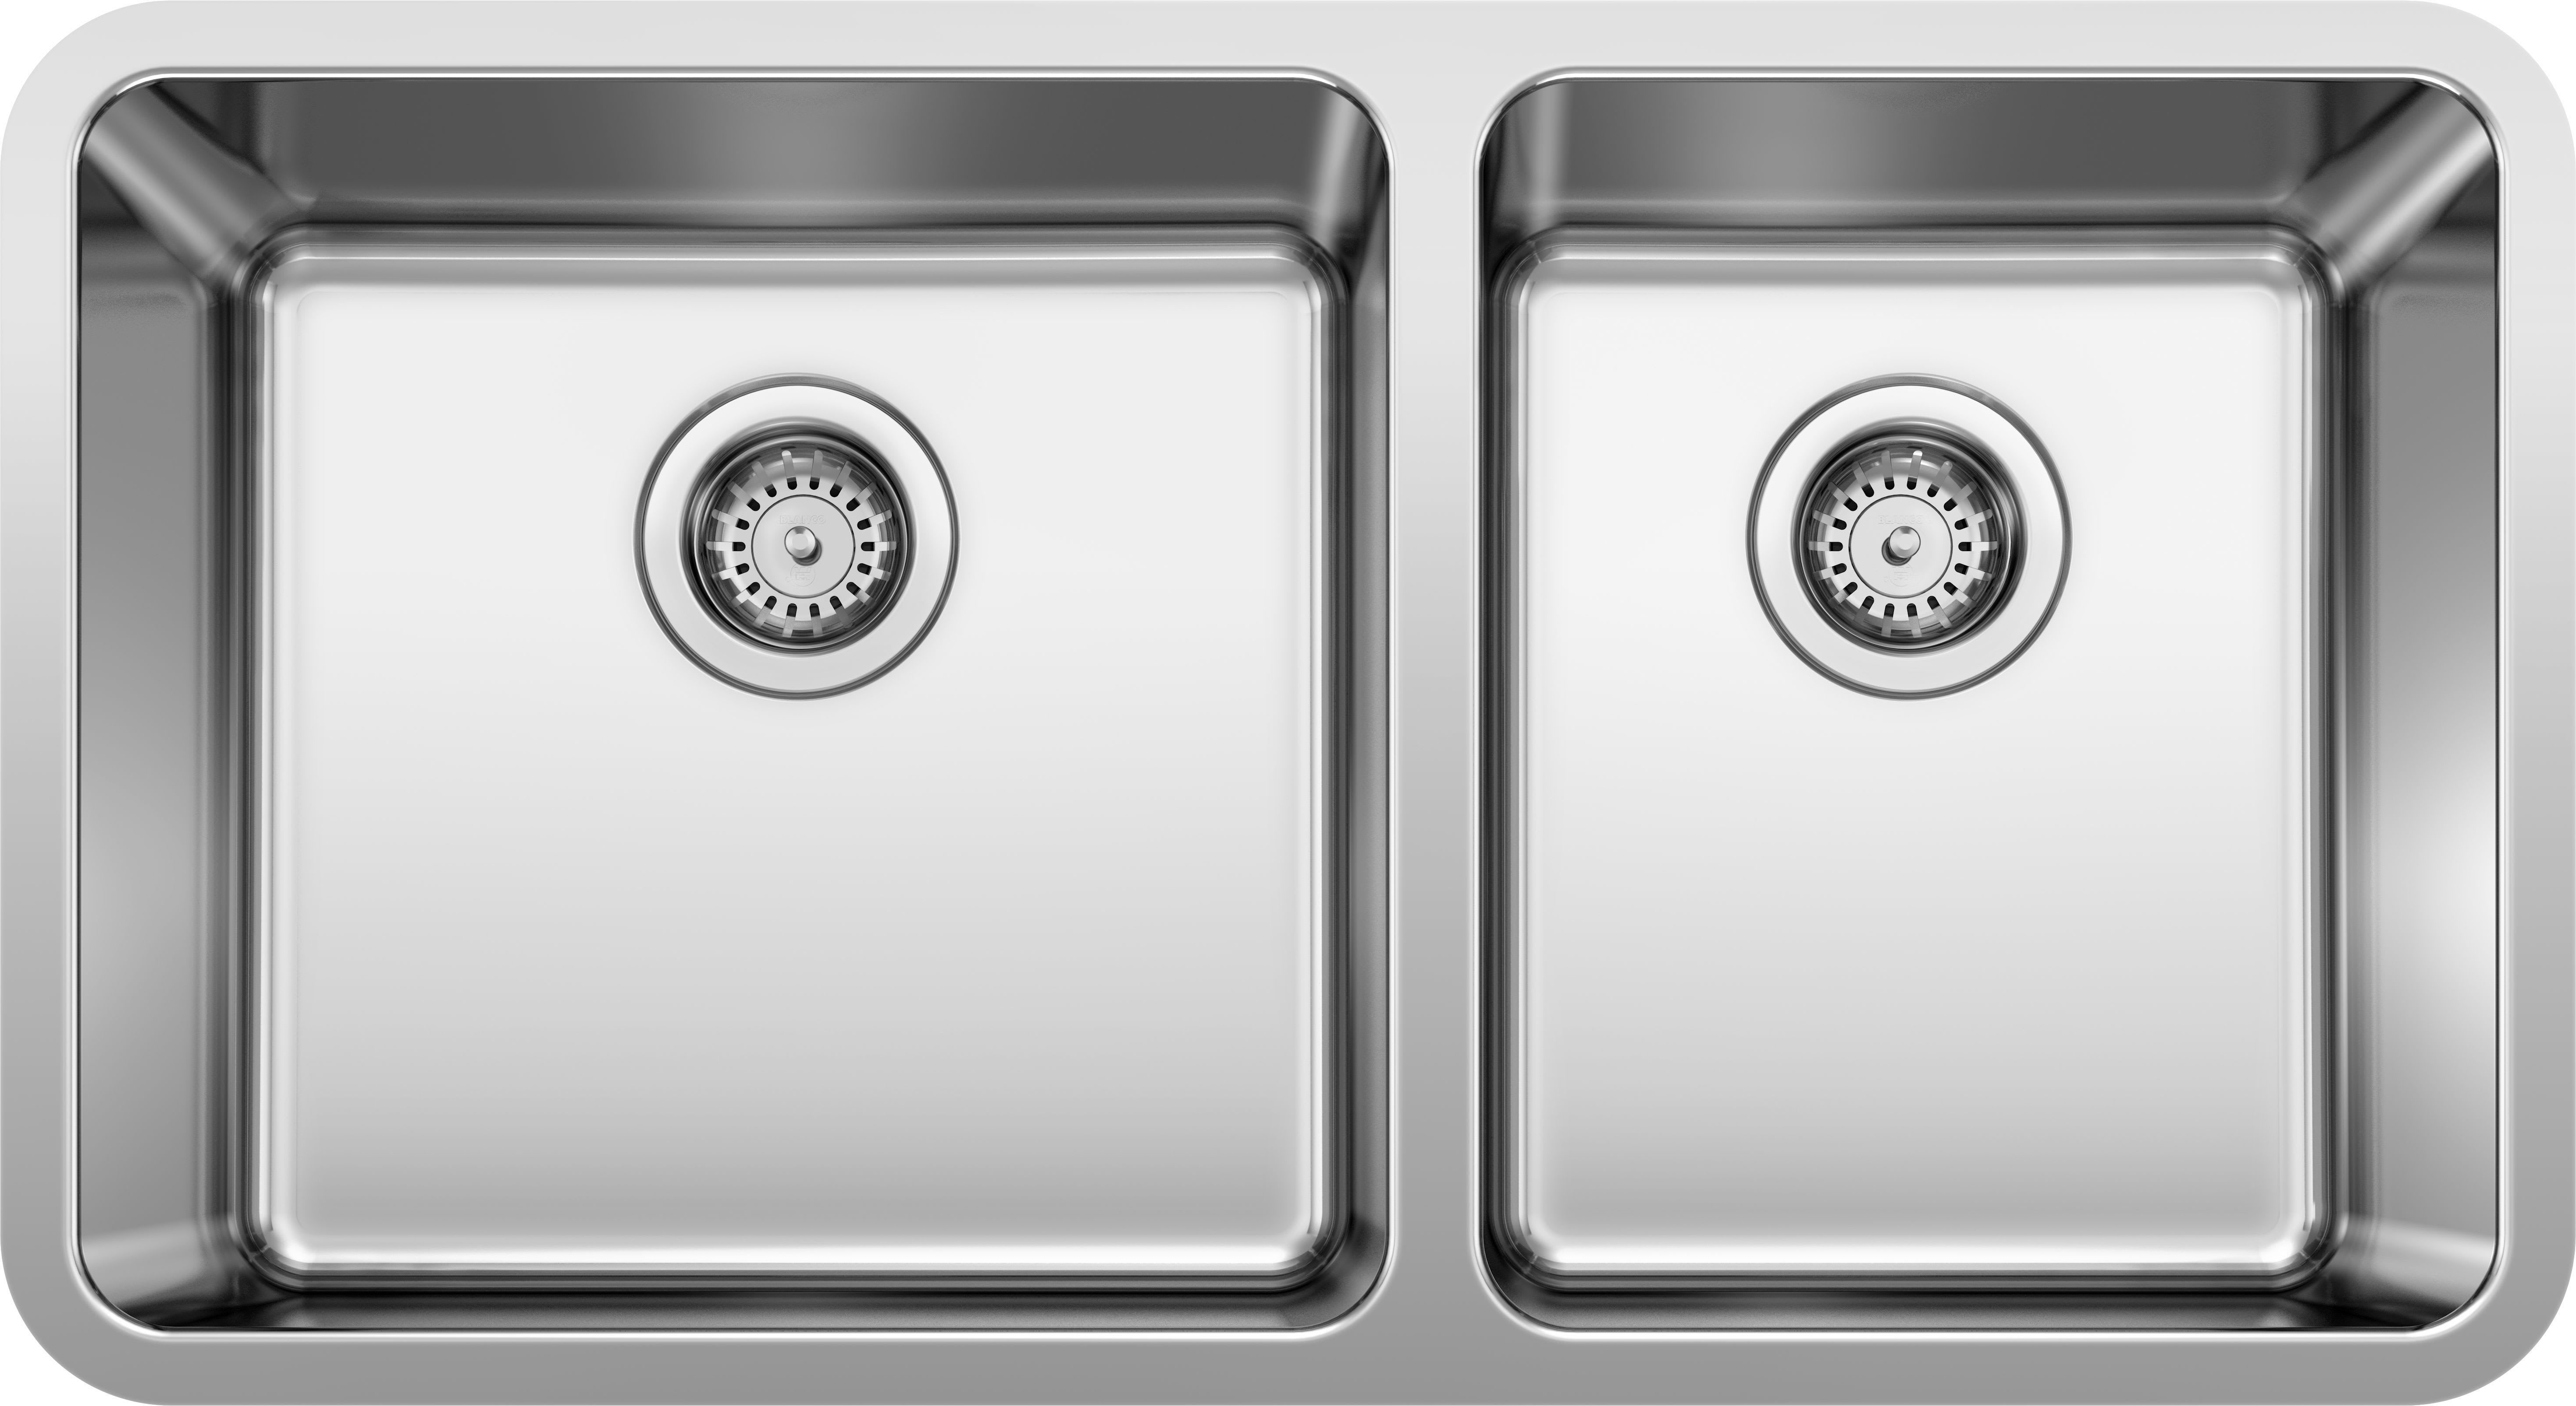 Blanco 442769 Stainless Steel Formera 33 Undermount Double Basin Stainless Steel Kitchen Sink Faucetdirect Com